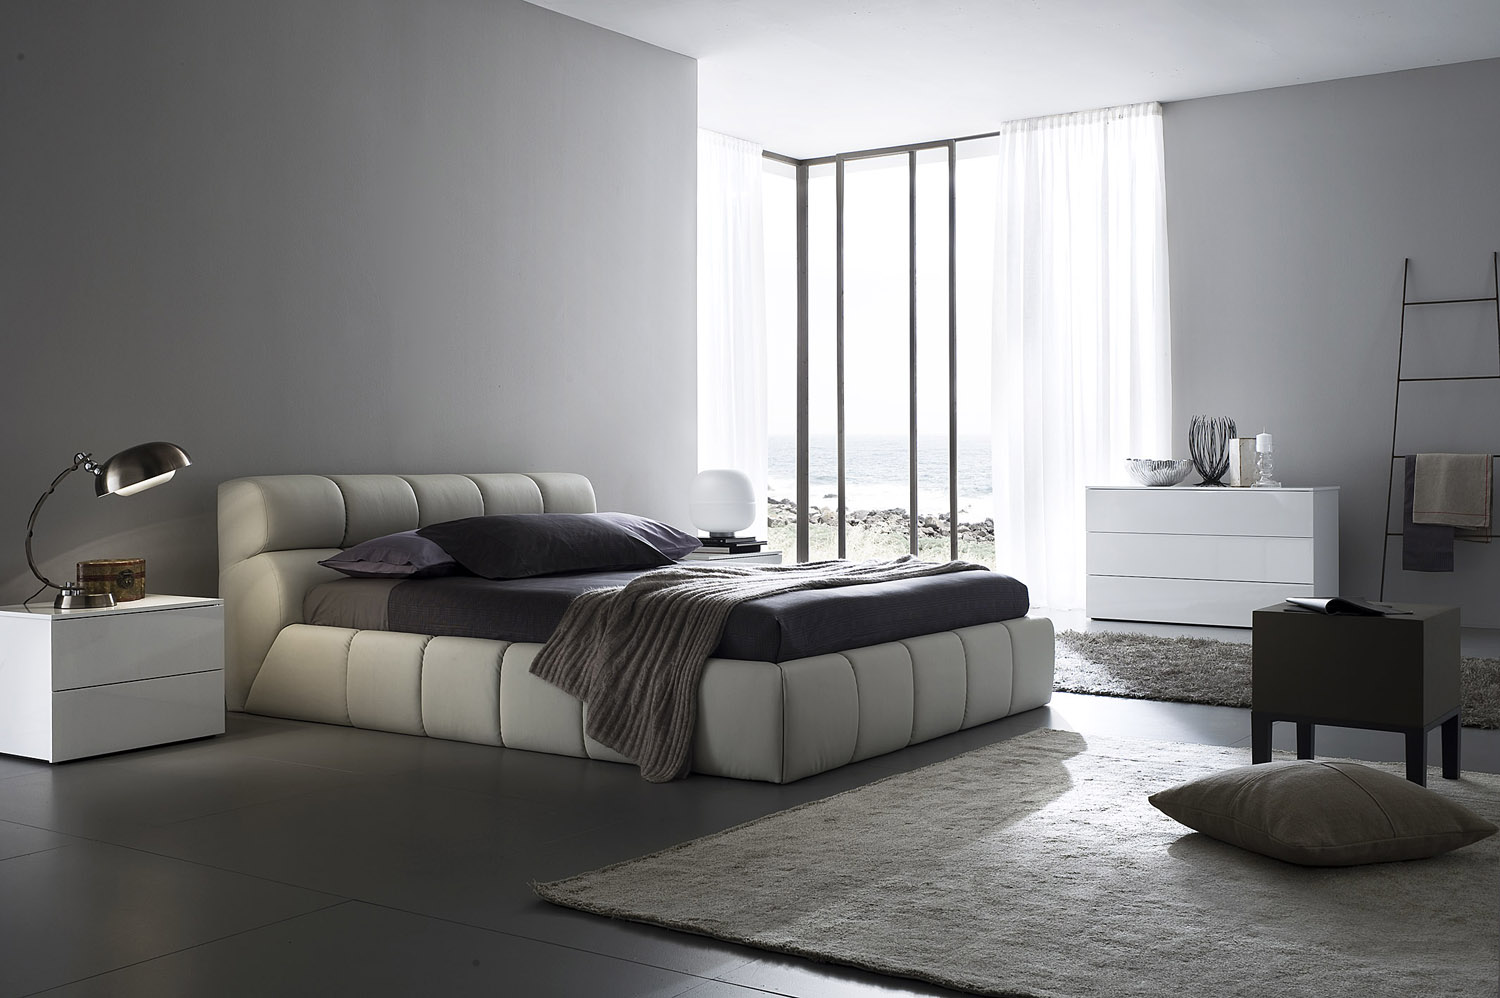 Remarkable Modern Bedroom Design Ideas 1500 x 998 · 216 kB · jpeg